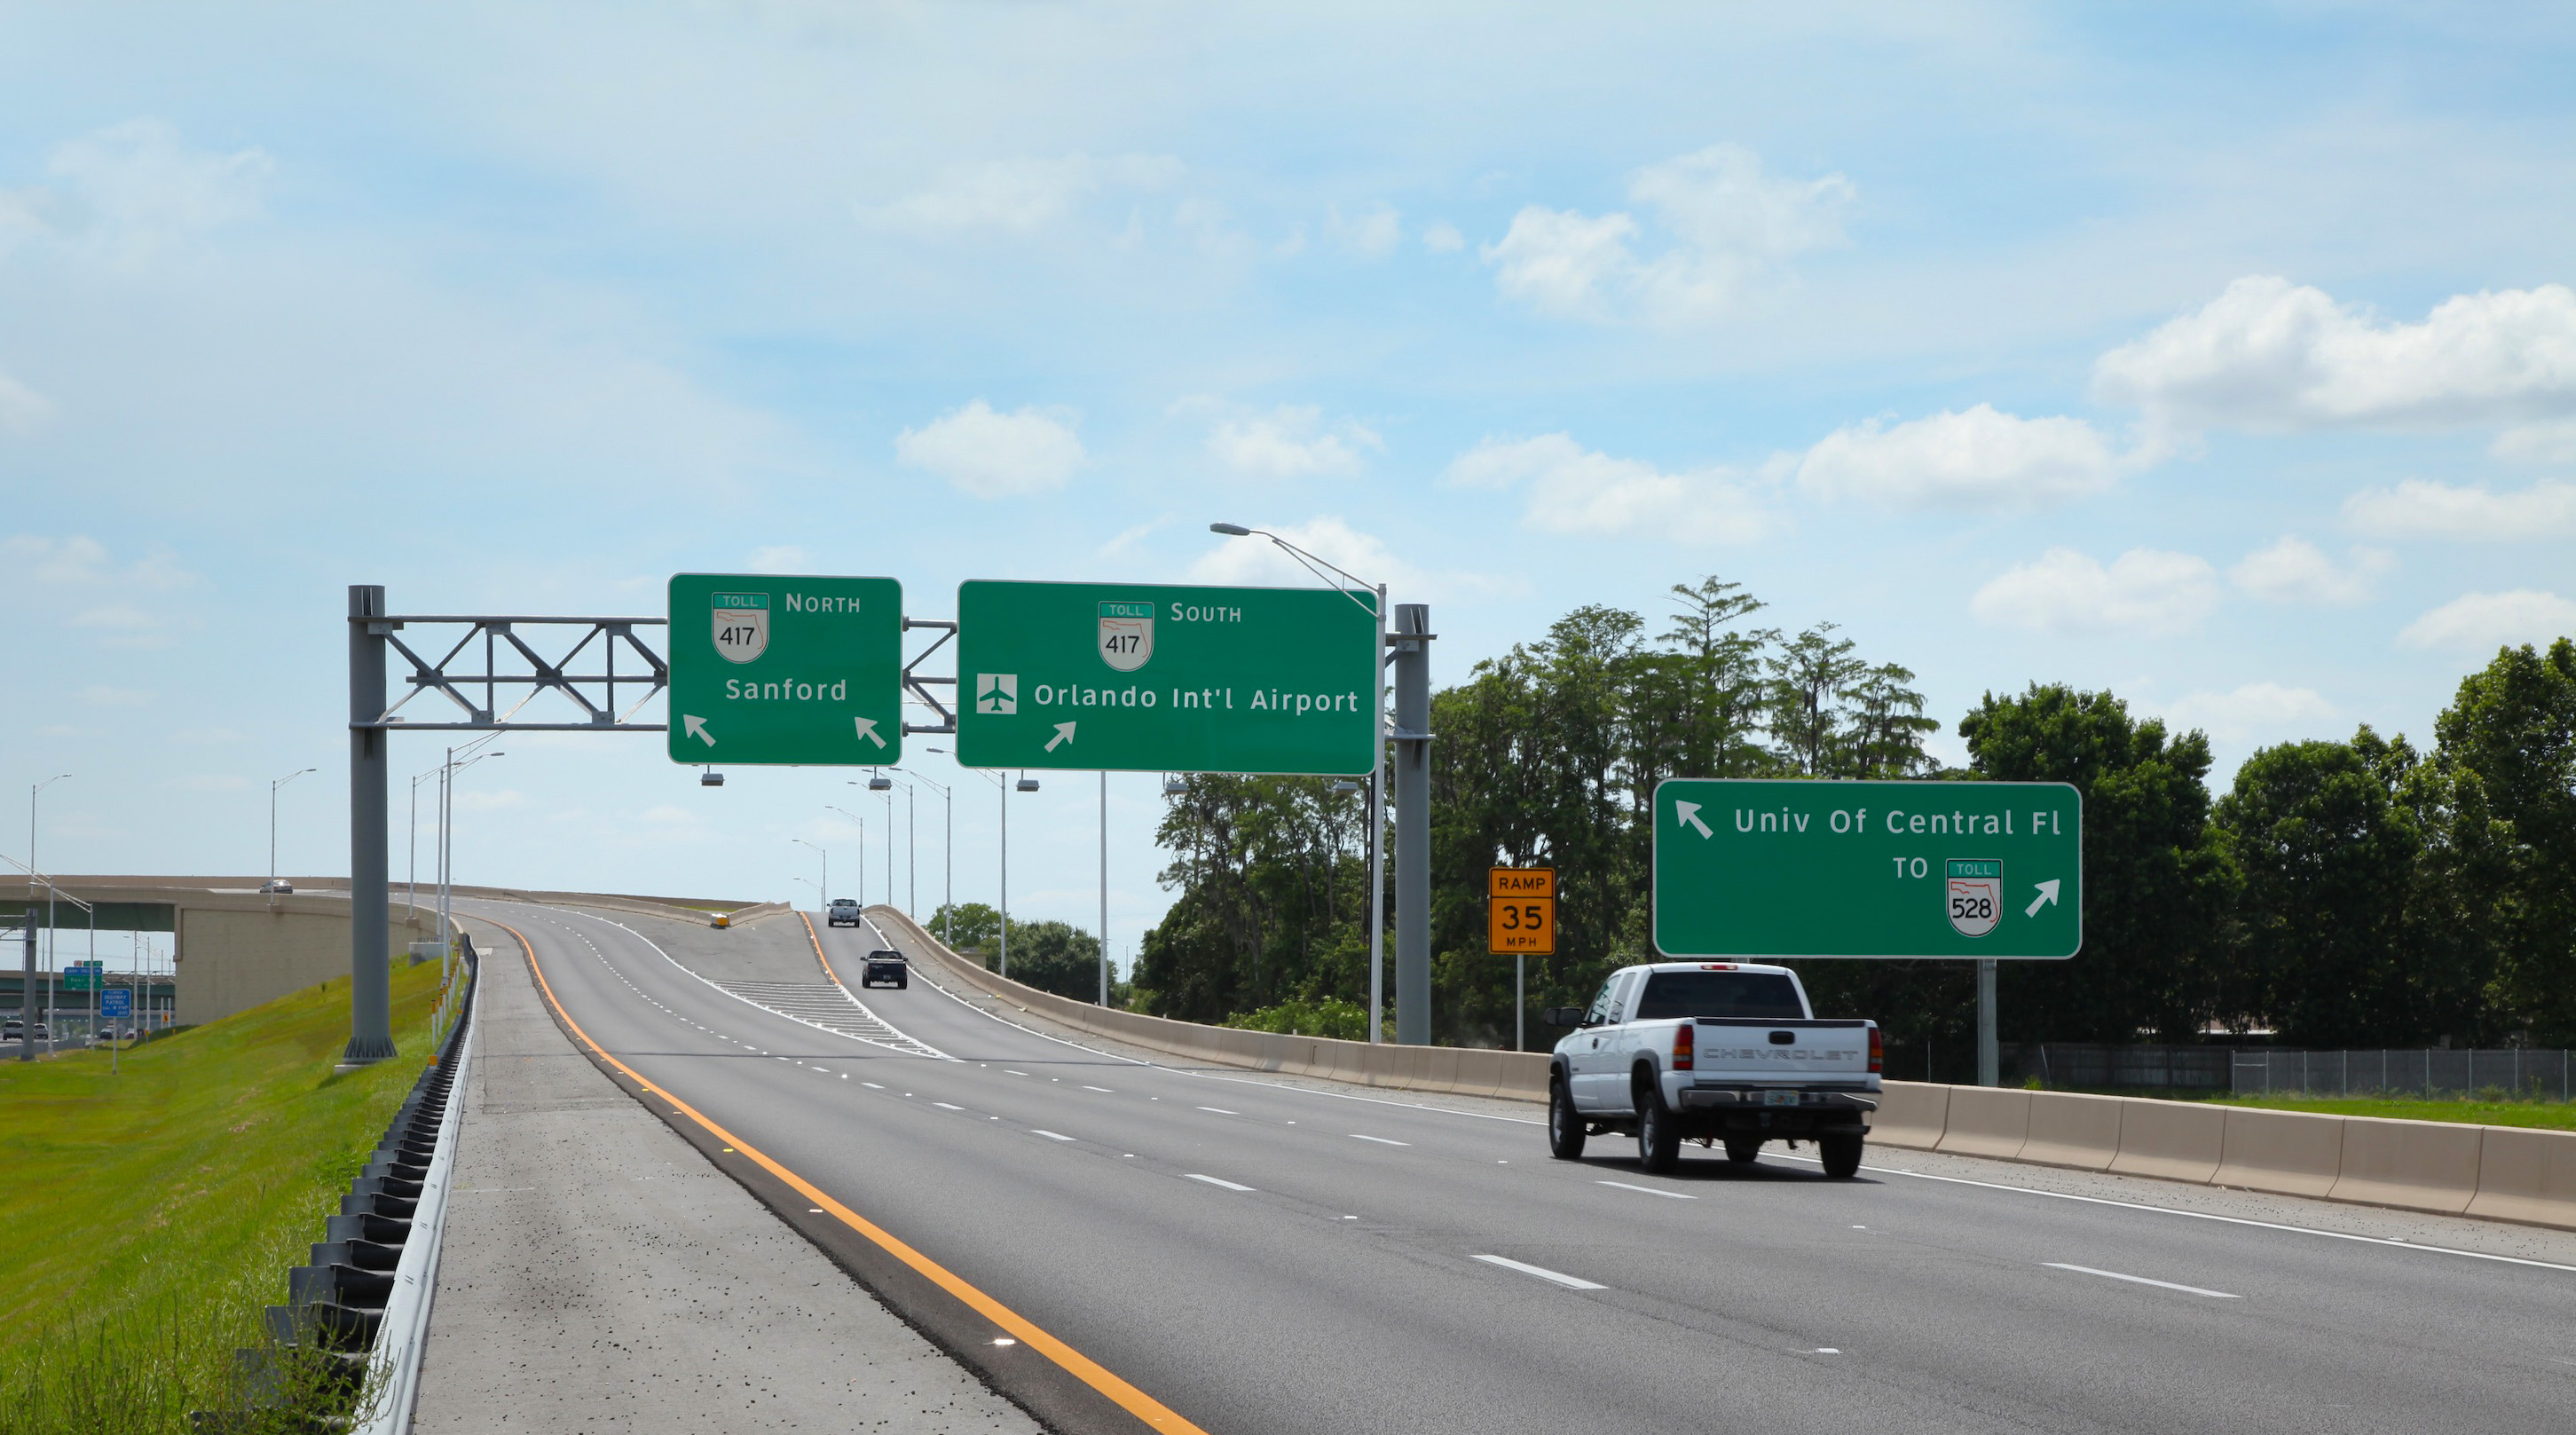 State Road 417 exchange splits North to Sanford, South to Orlando International Airport